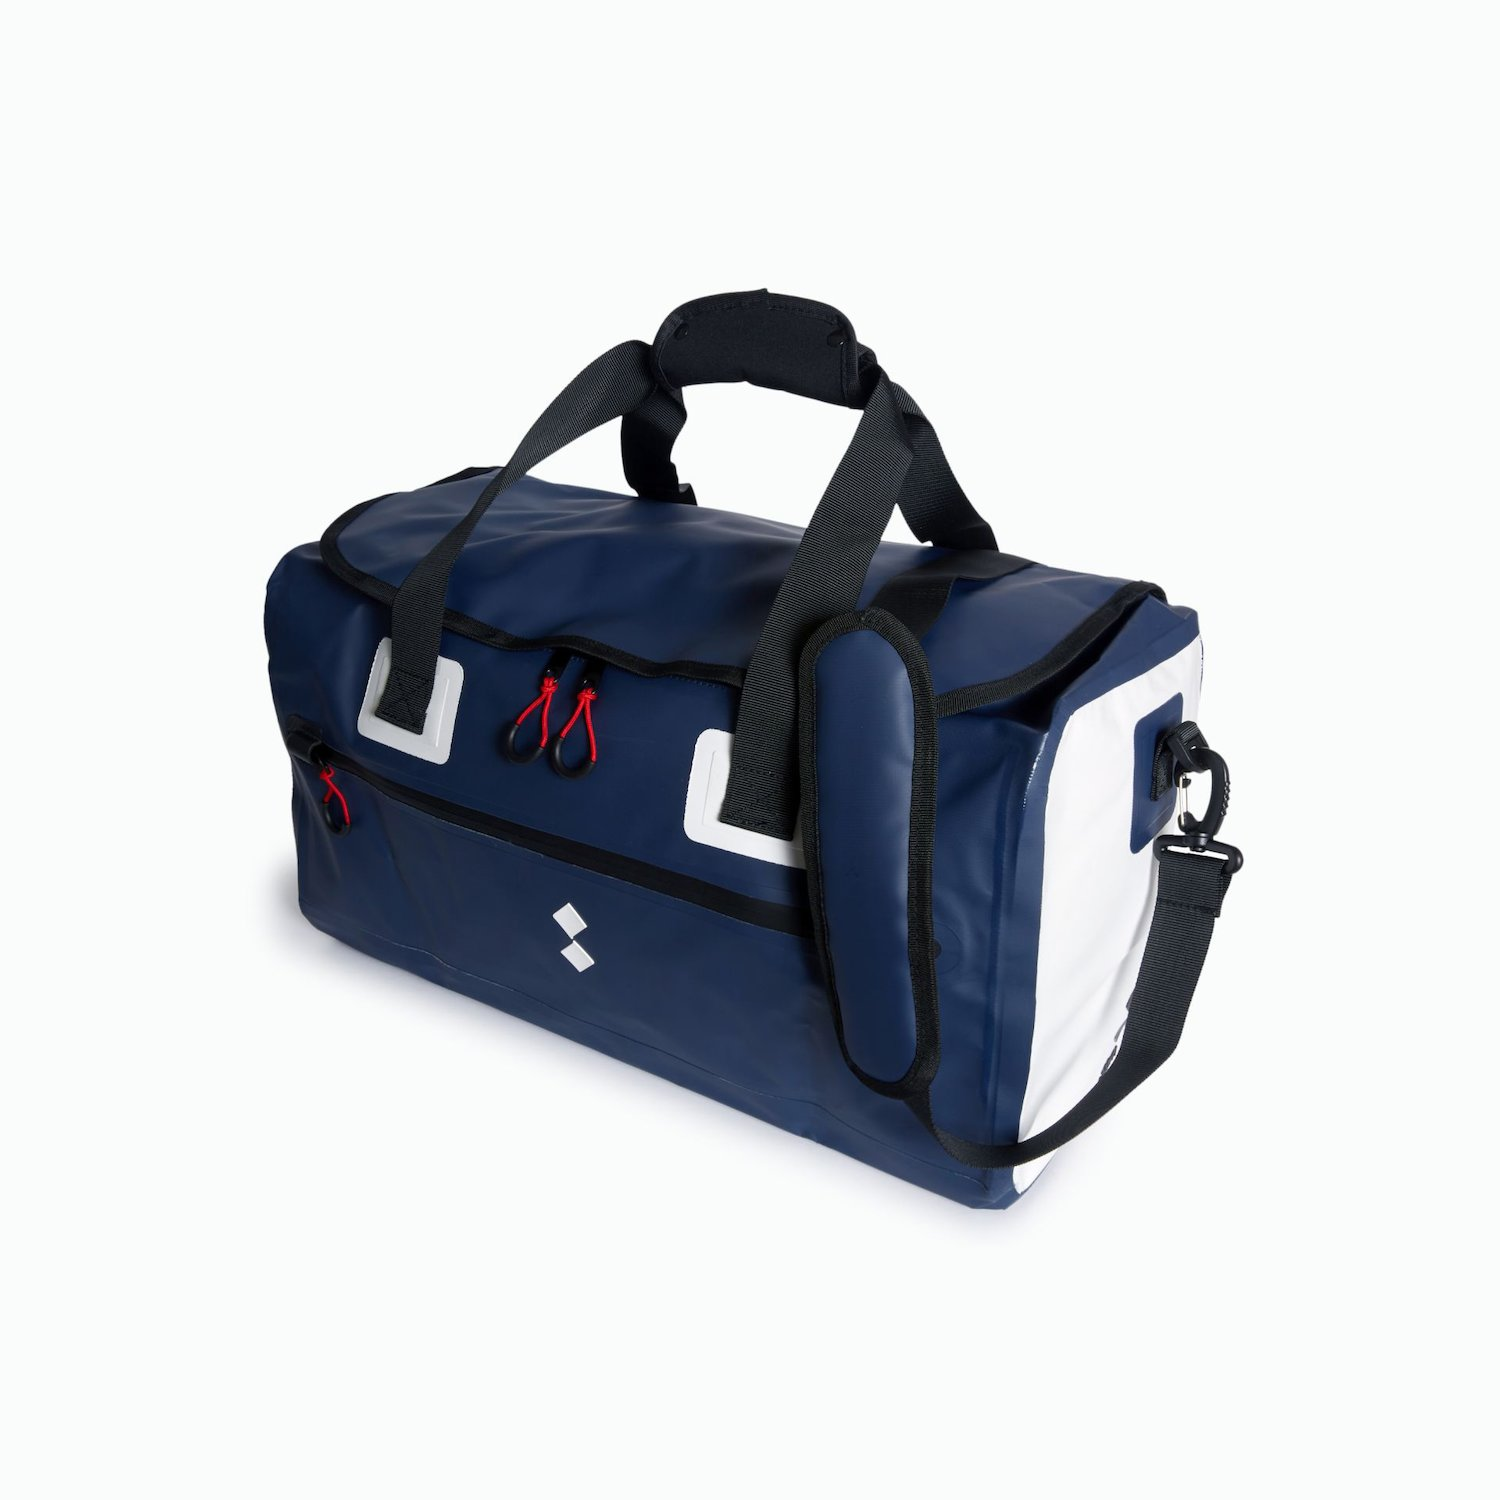 Evolution 4 bag - Navy